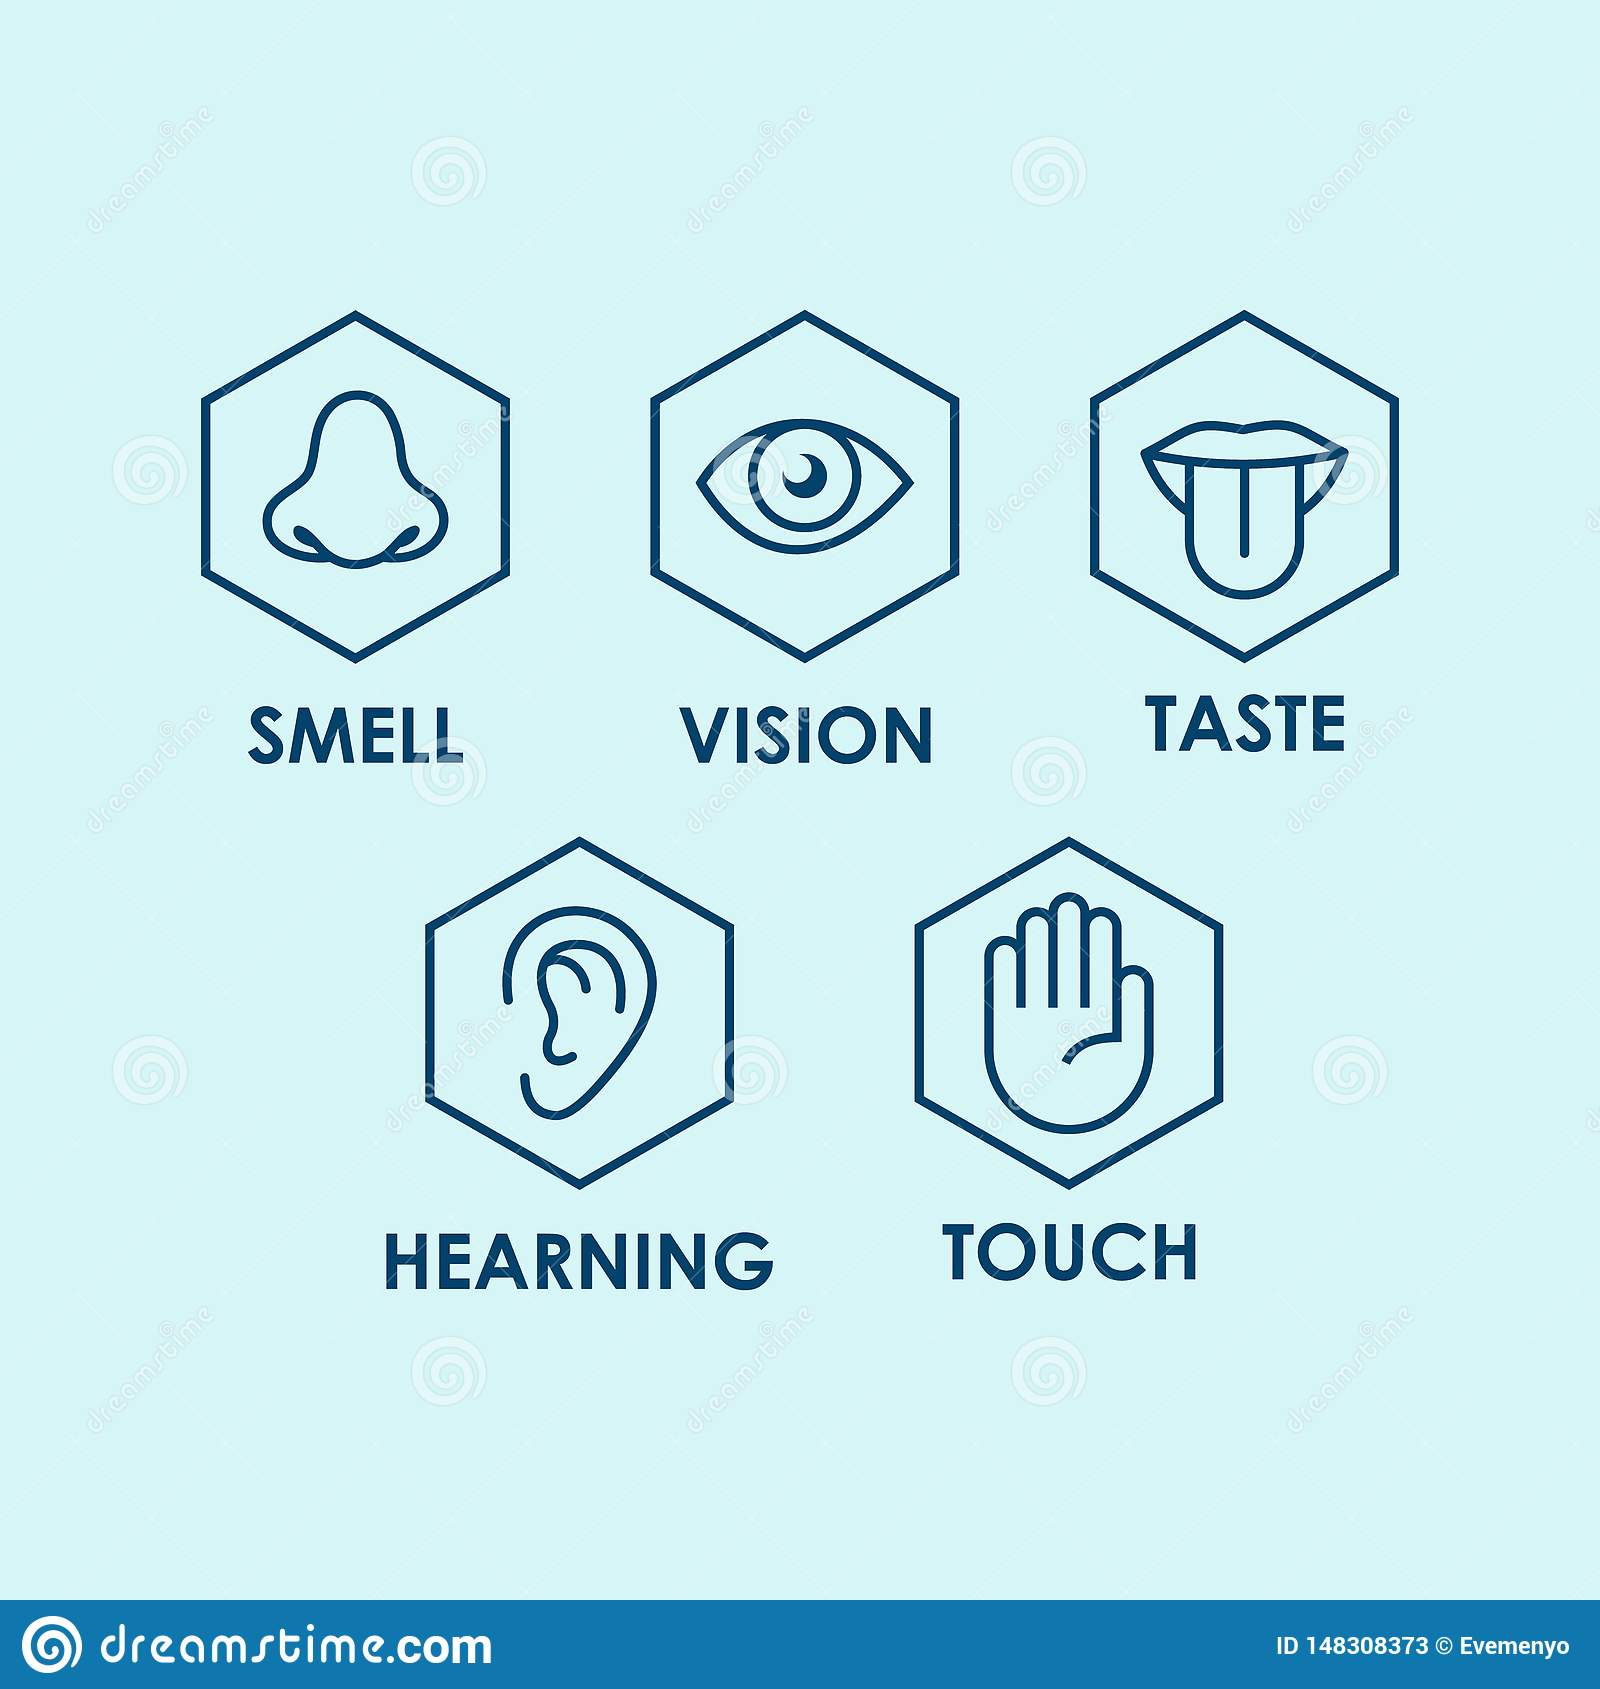 Icon set of the five human senses: vision eye smell nose hearing ear touch hand taste mouth with tongue.